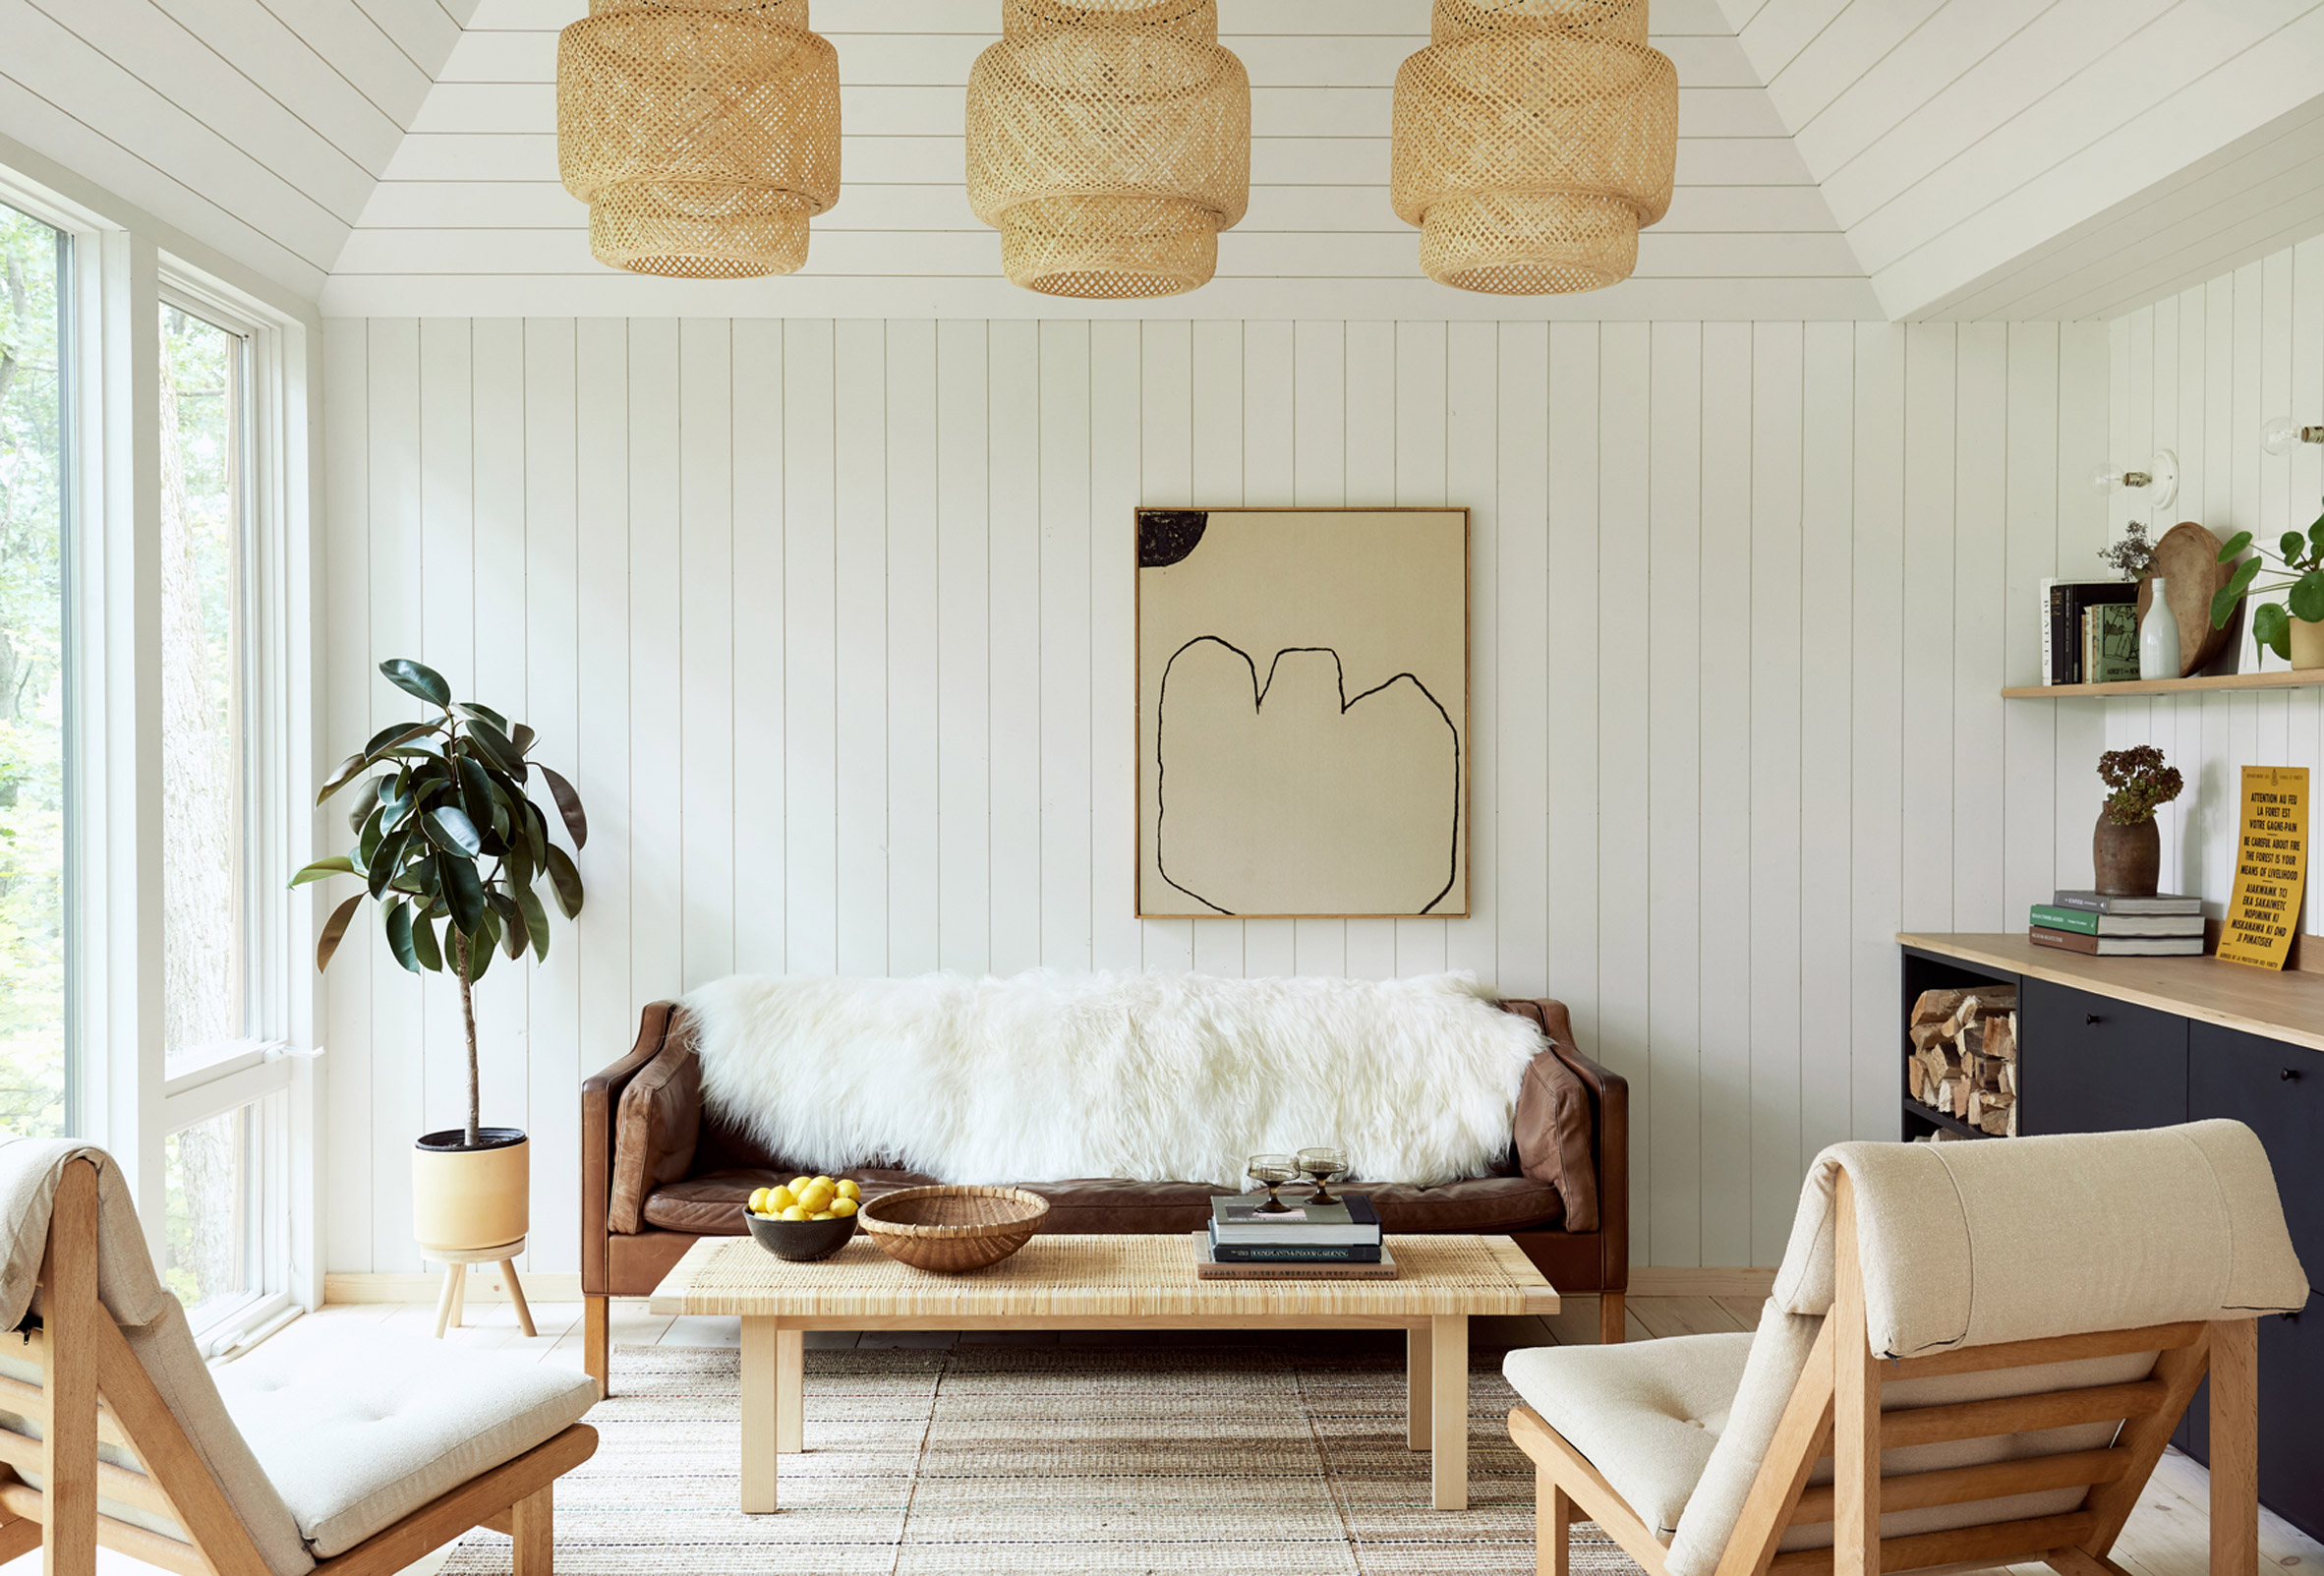 The Hut by Midland Architects